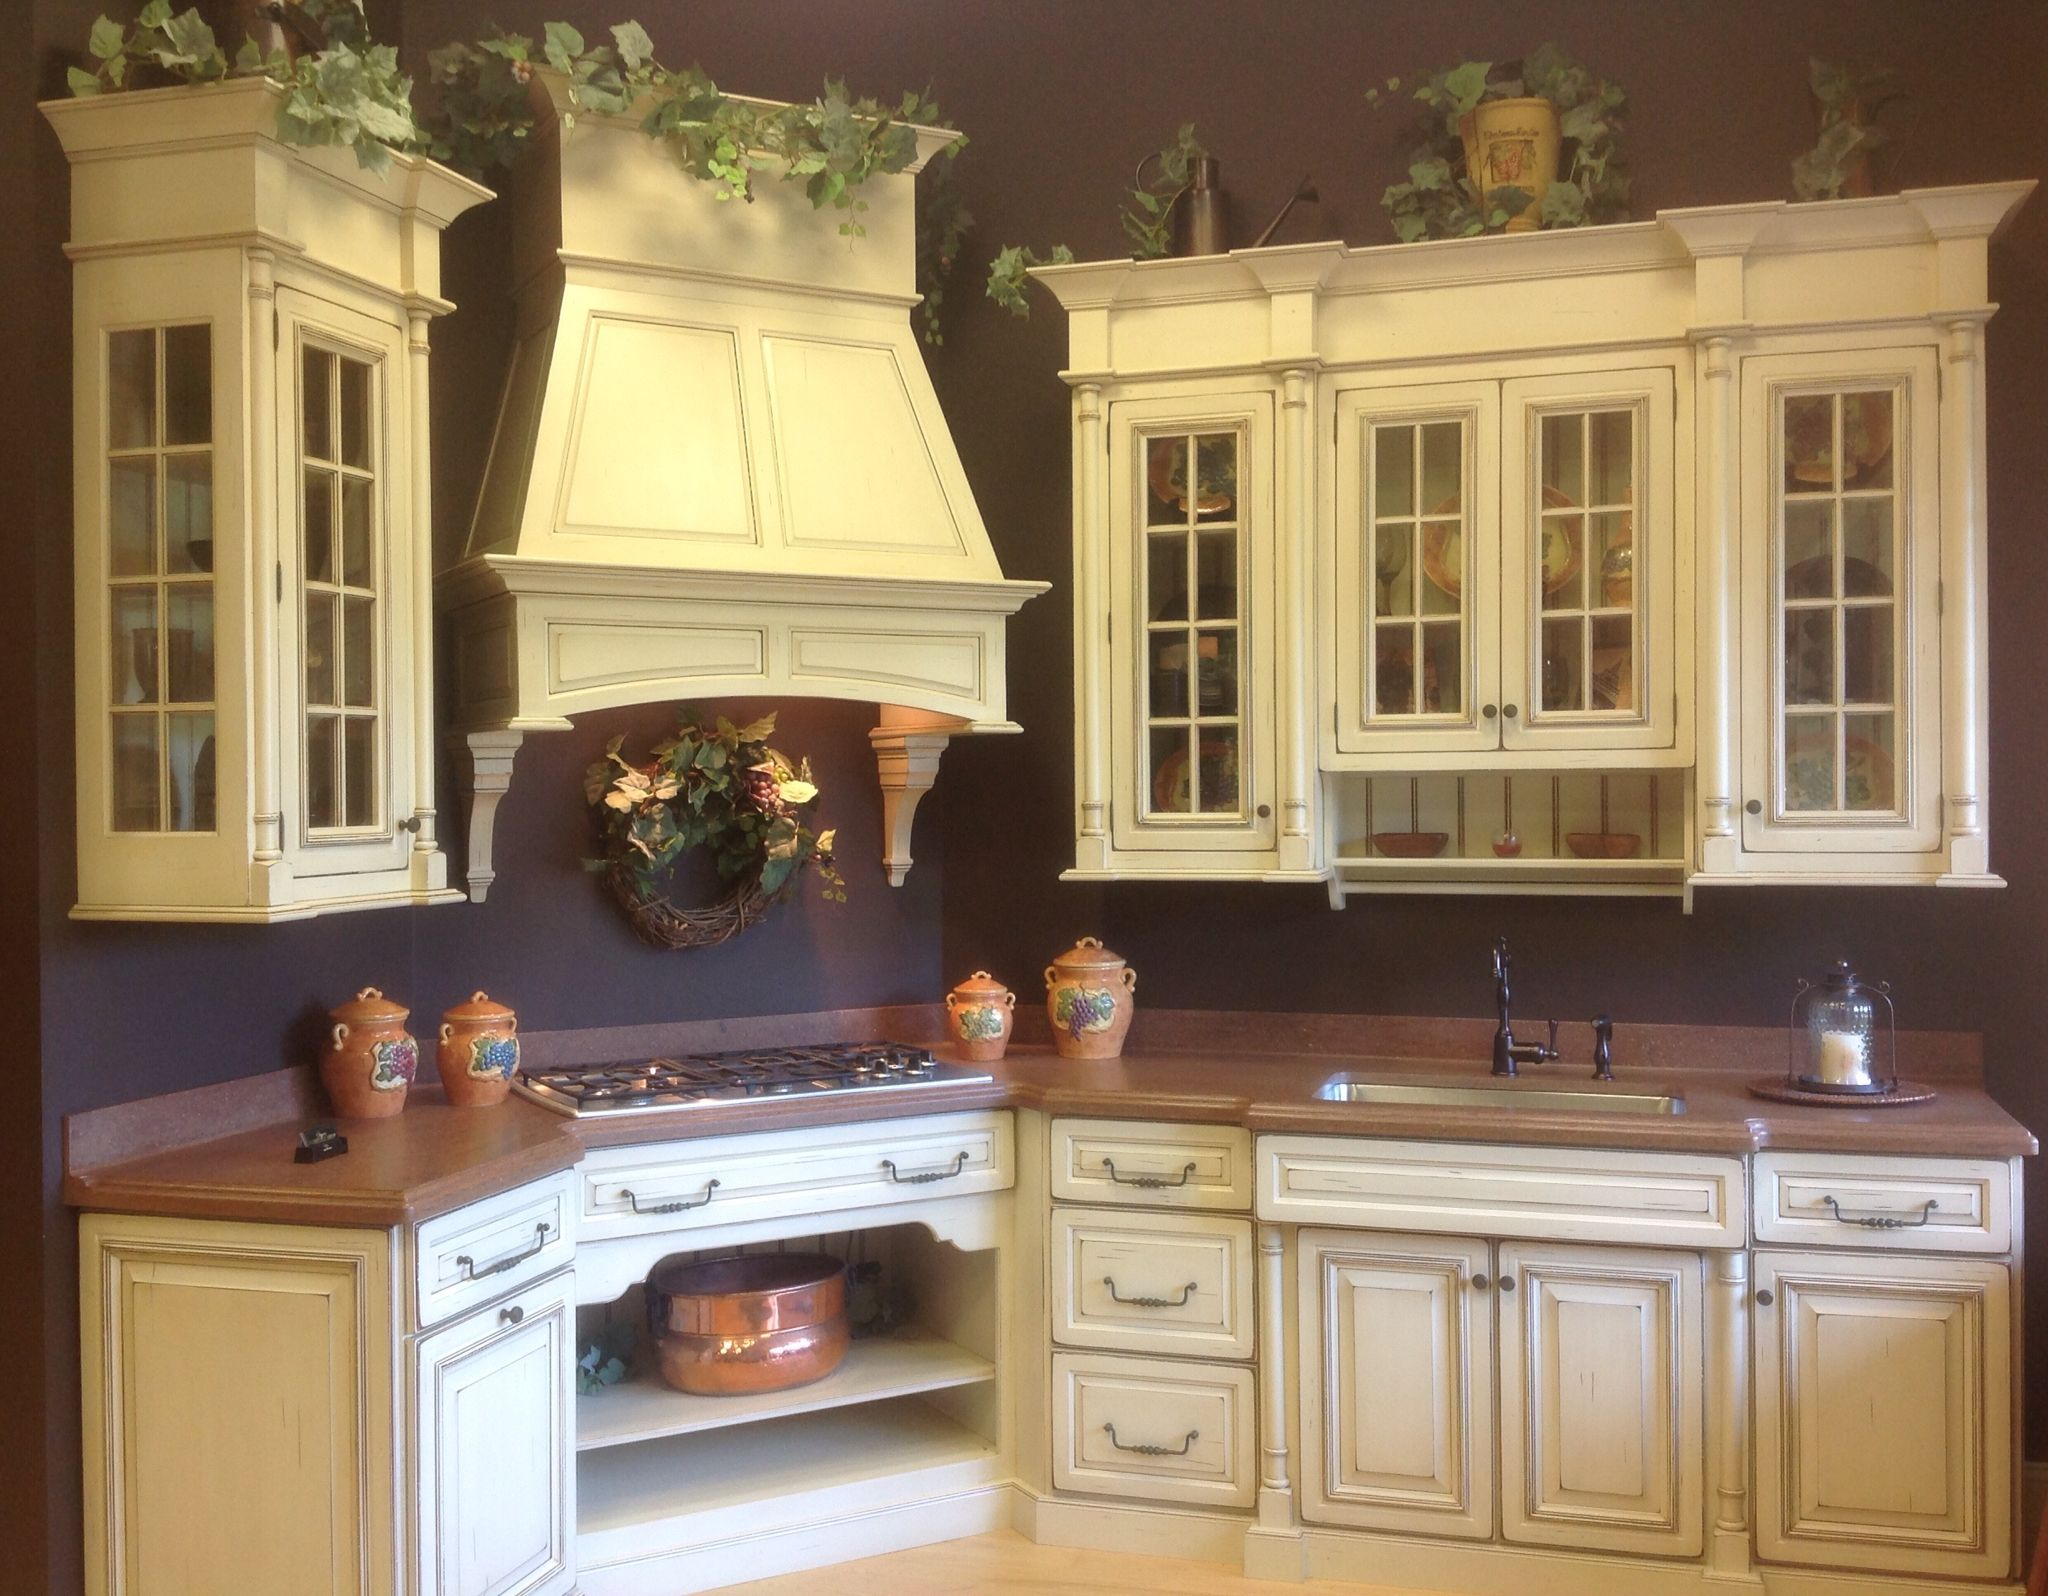 Custom Grabill Kitchen Dyer S Cabinet Shop Is Having A Display Sale This Maplewood Custom Distressed Traditional Doorstyle New Homes Home Kitchen Cabinetry